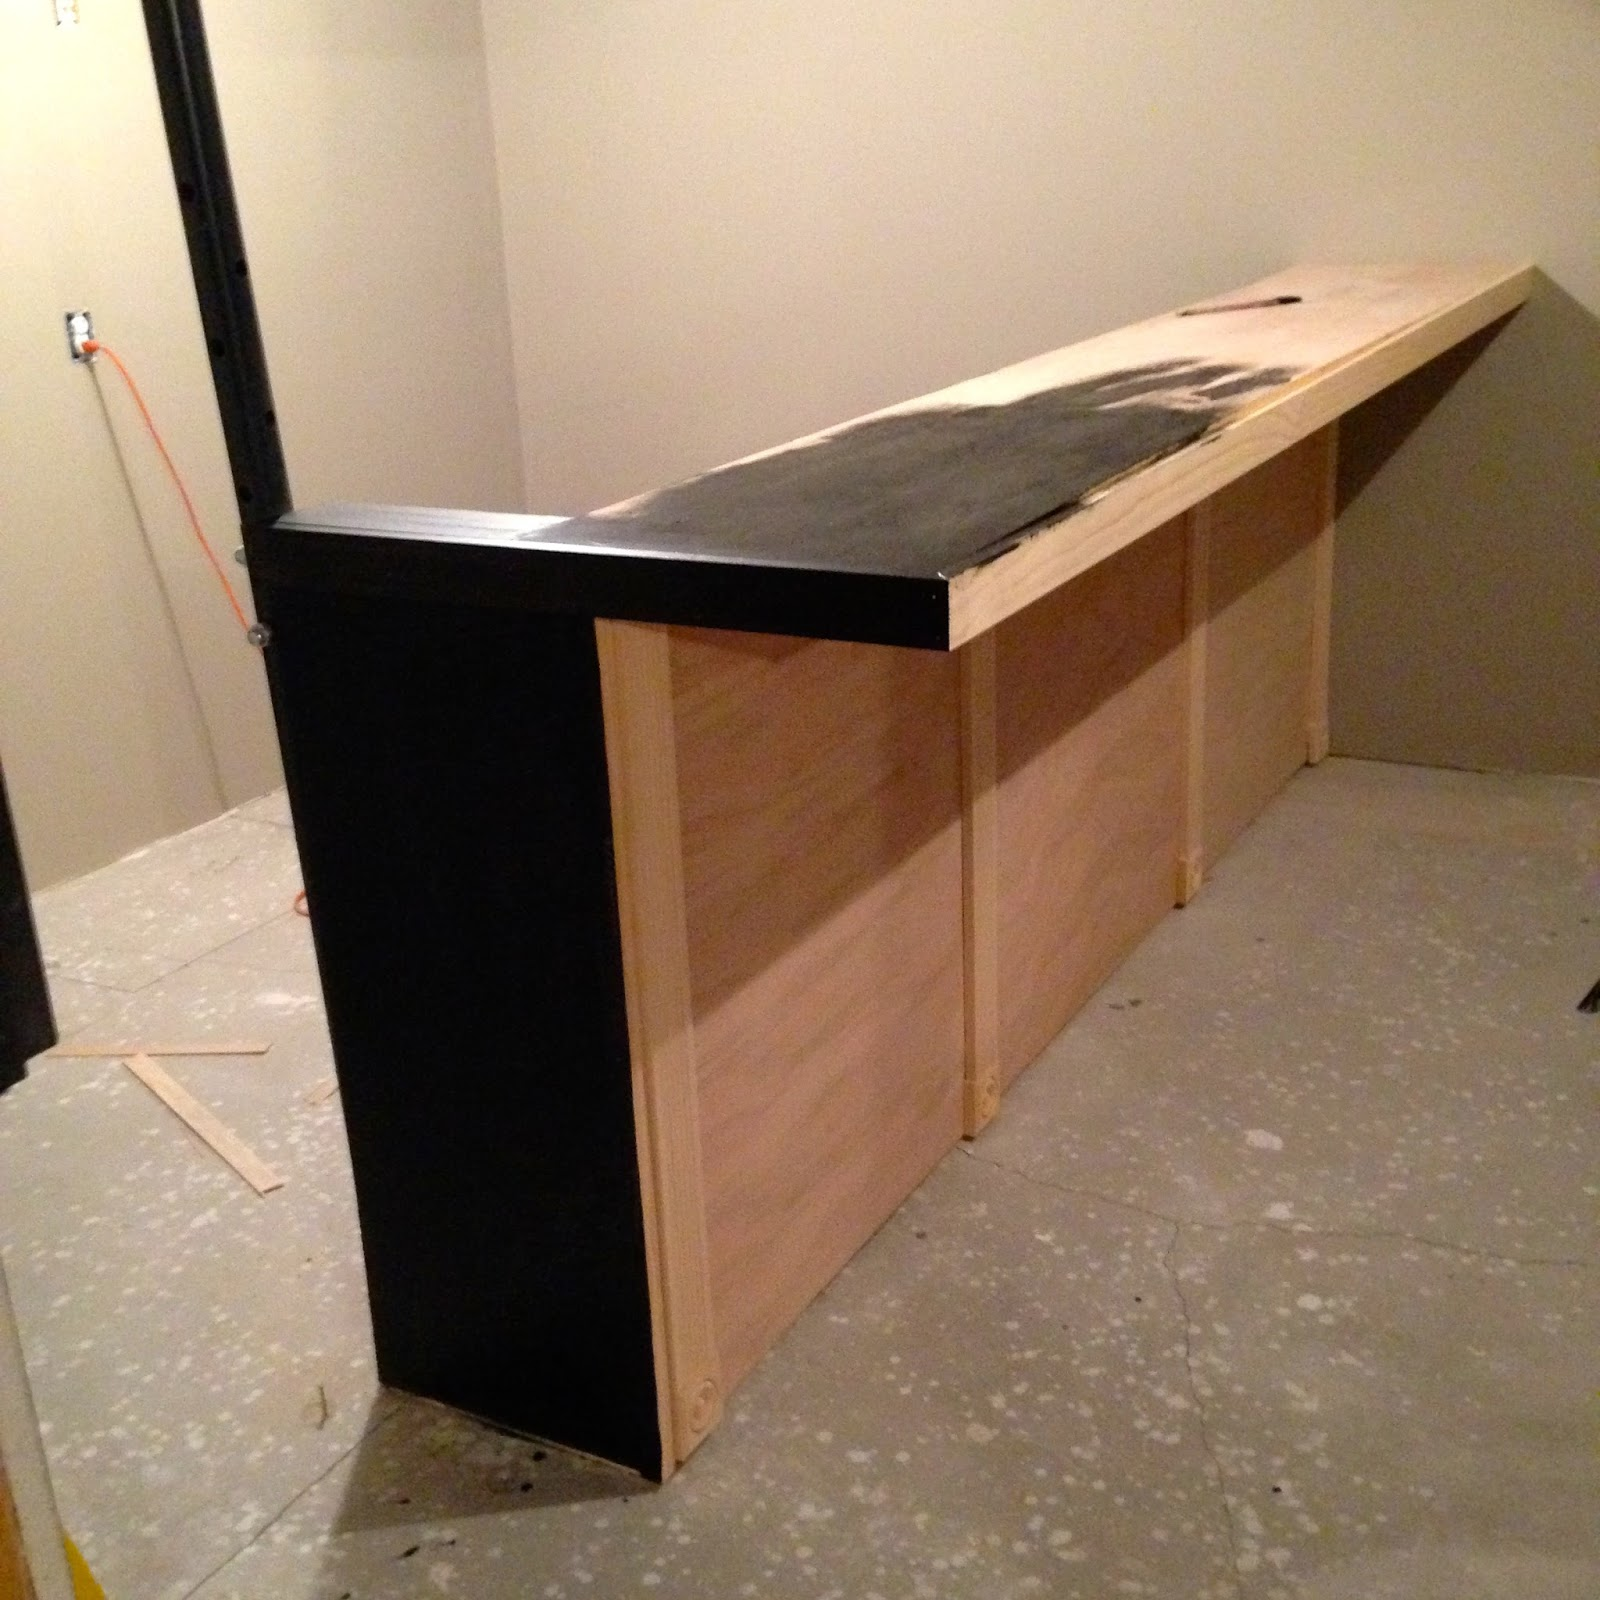 Diy Why Spend More Build Your Own Bar With Faux Granite